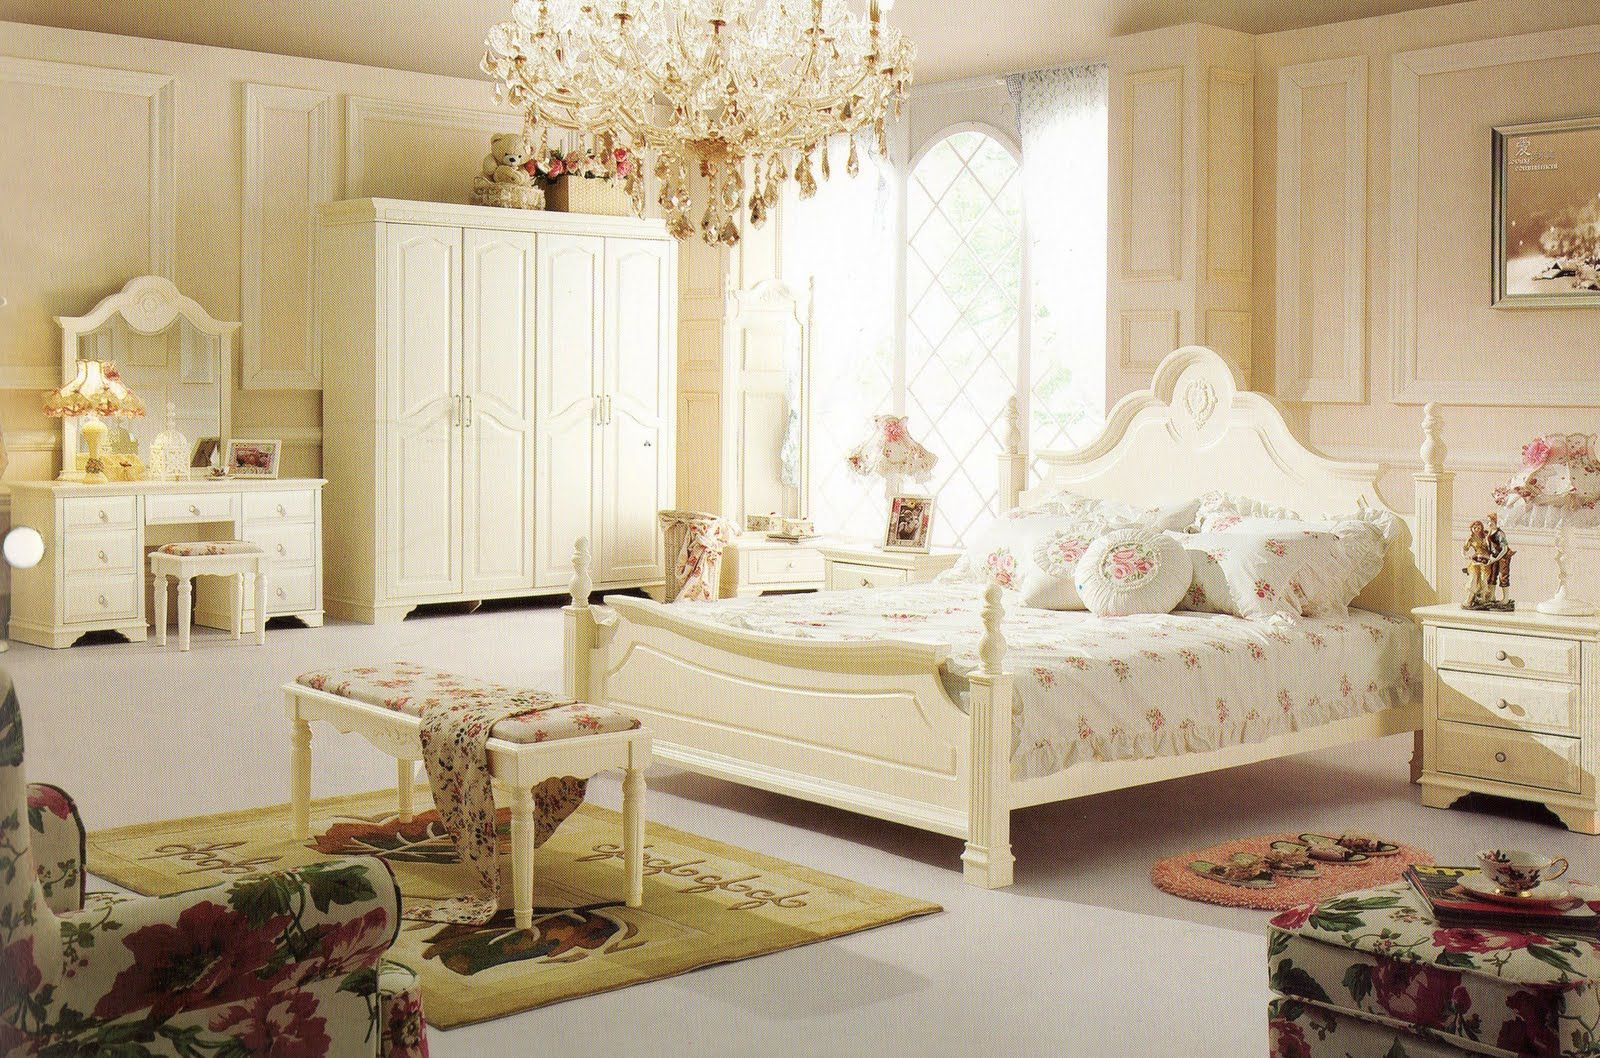 Beautiful bedroom interiors - Beautiful French Bedrooms New Arrival Of Our Beautiful And Elegant French Style